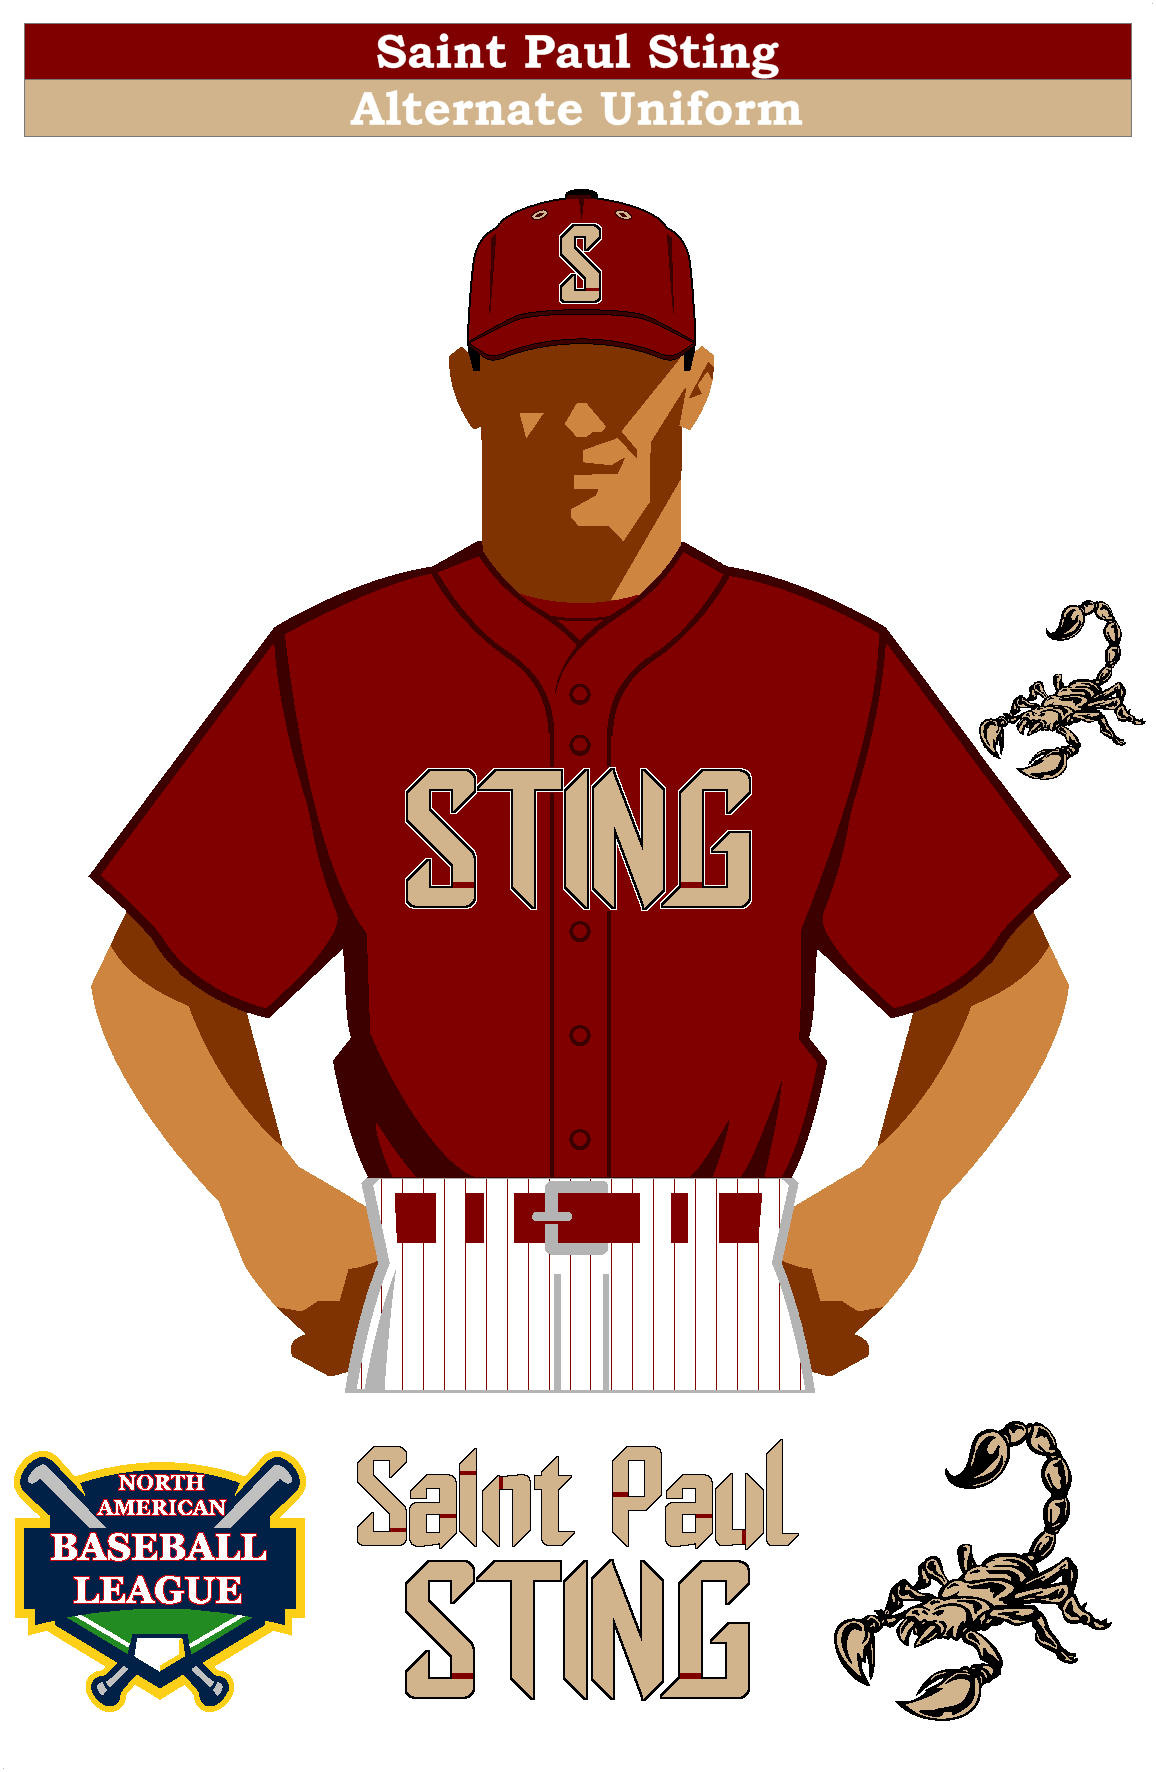 Saint Paul Sting Alternate Uniform Baseball Uniform Custom Baseballs Baseball